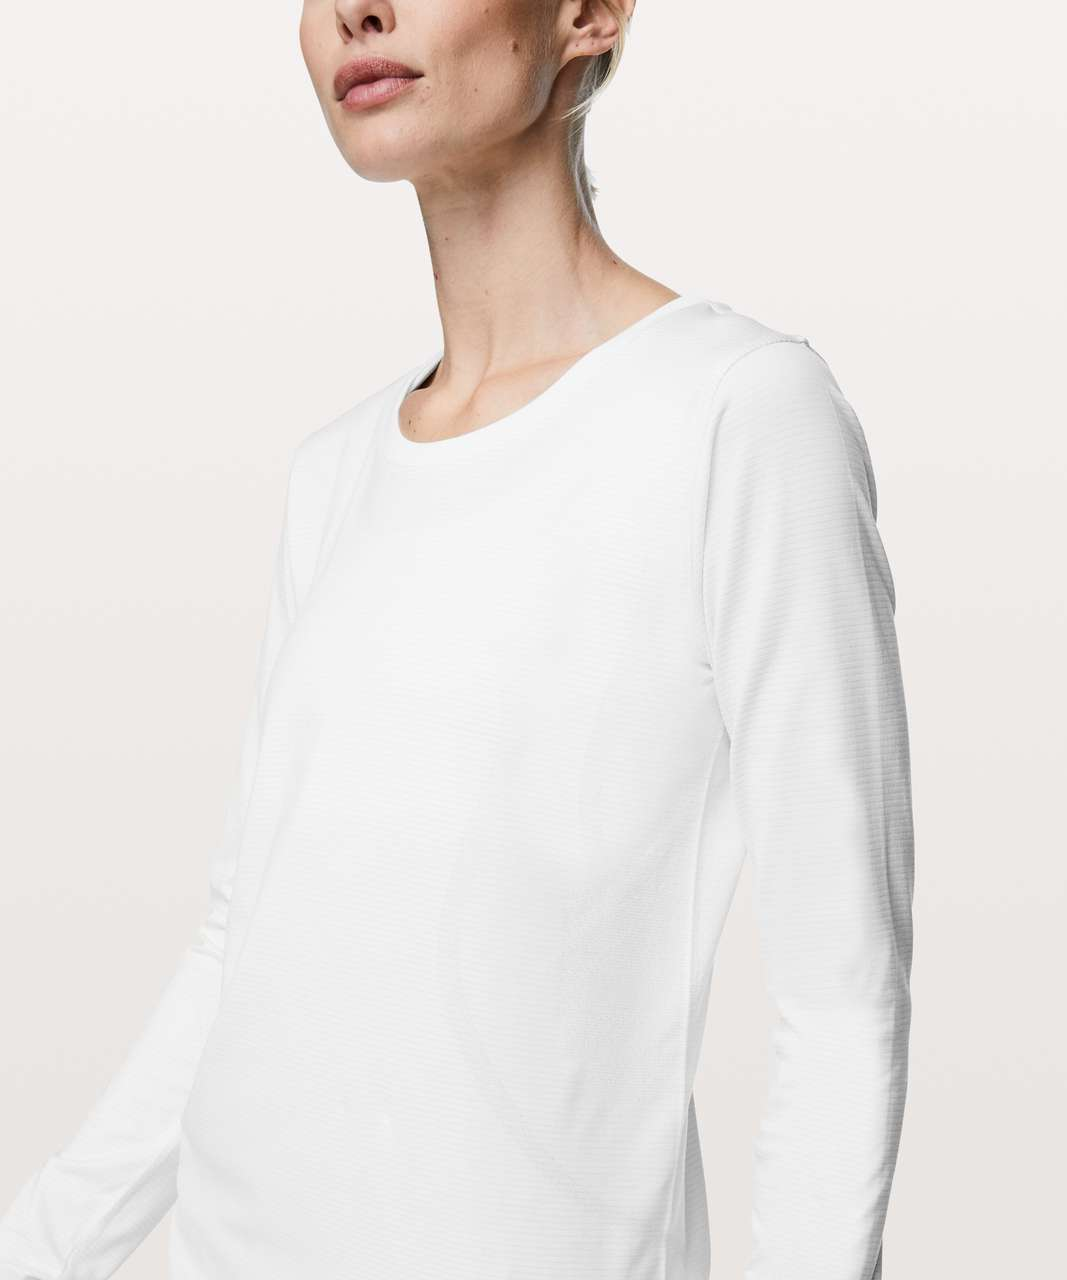 Lululemon Swiftly Tech Long Sleeve (Breeze) *Relaxed Fit - White / White